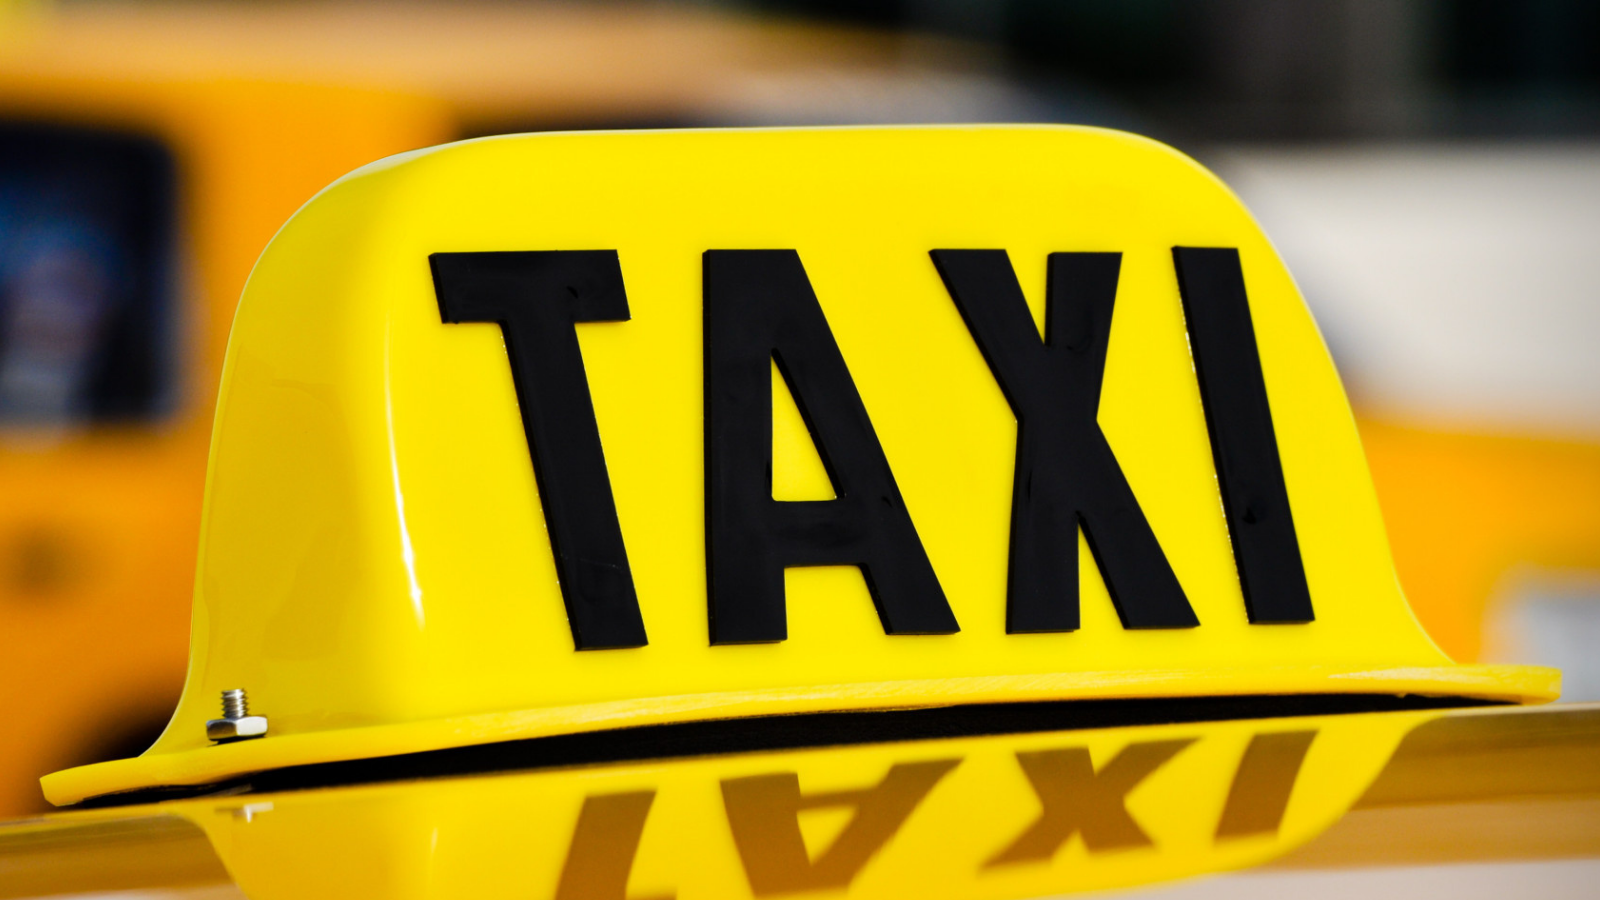 You are currently viewing How to Run a Successful Taxi Business